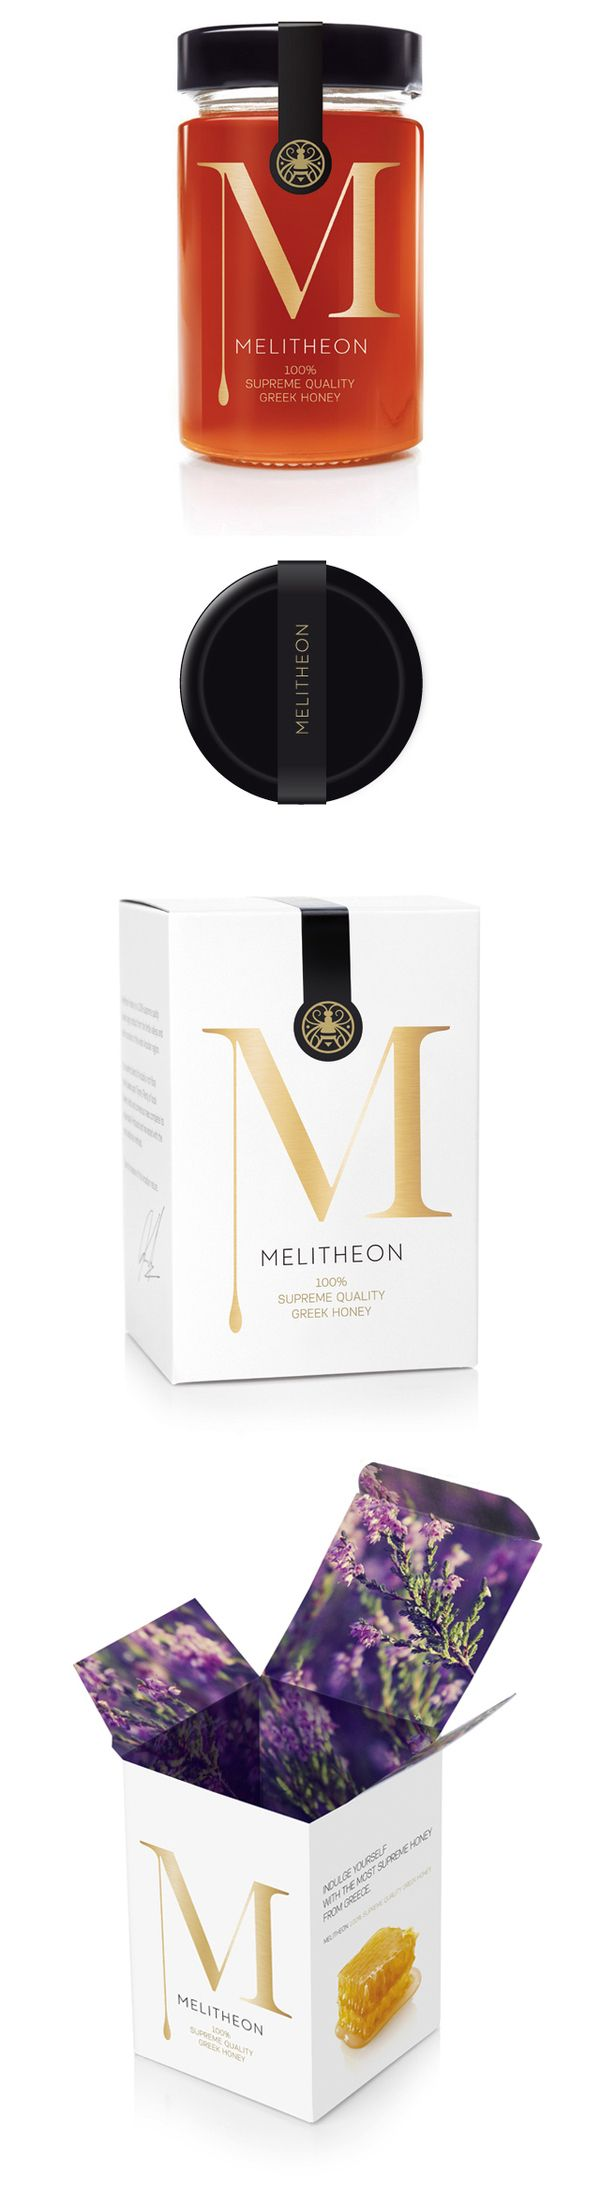 Melitheon Packaging Design by Aris Goumpouros. Love the surprise & delight when you open the top flap.